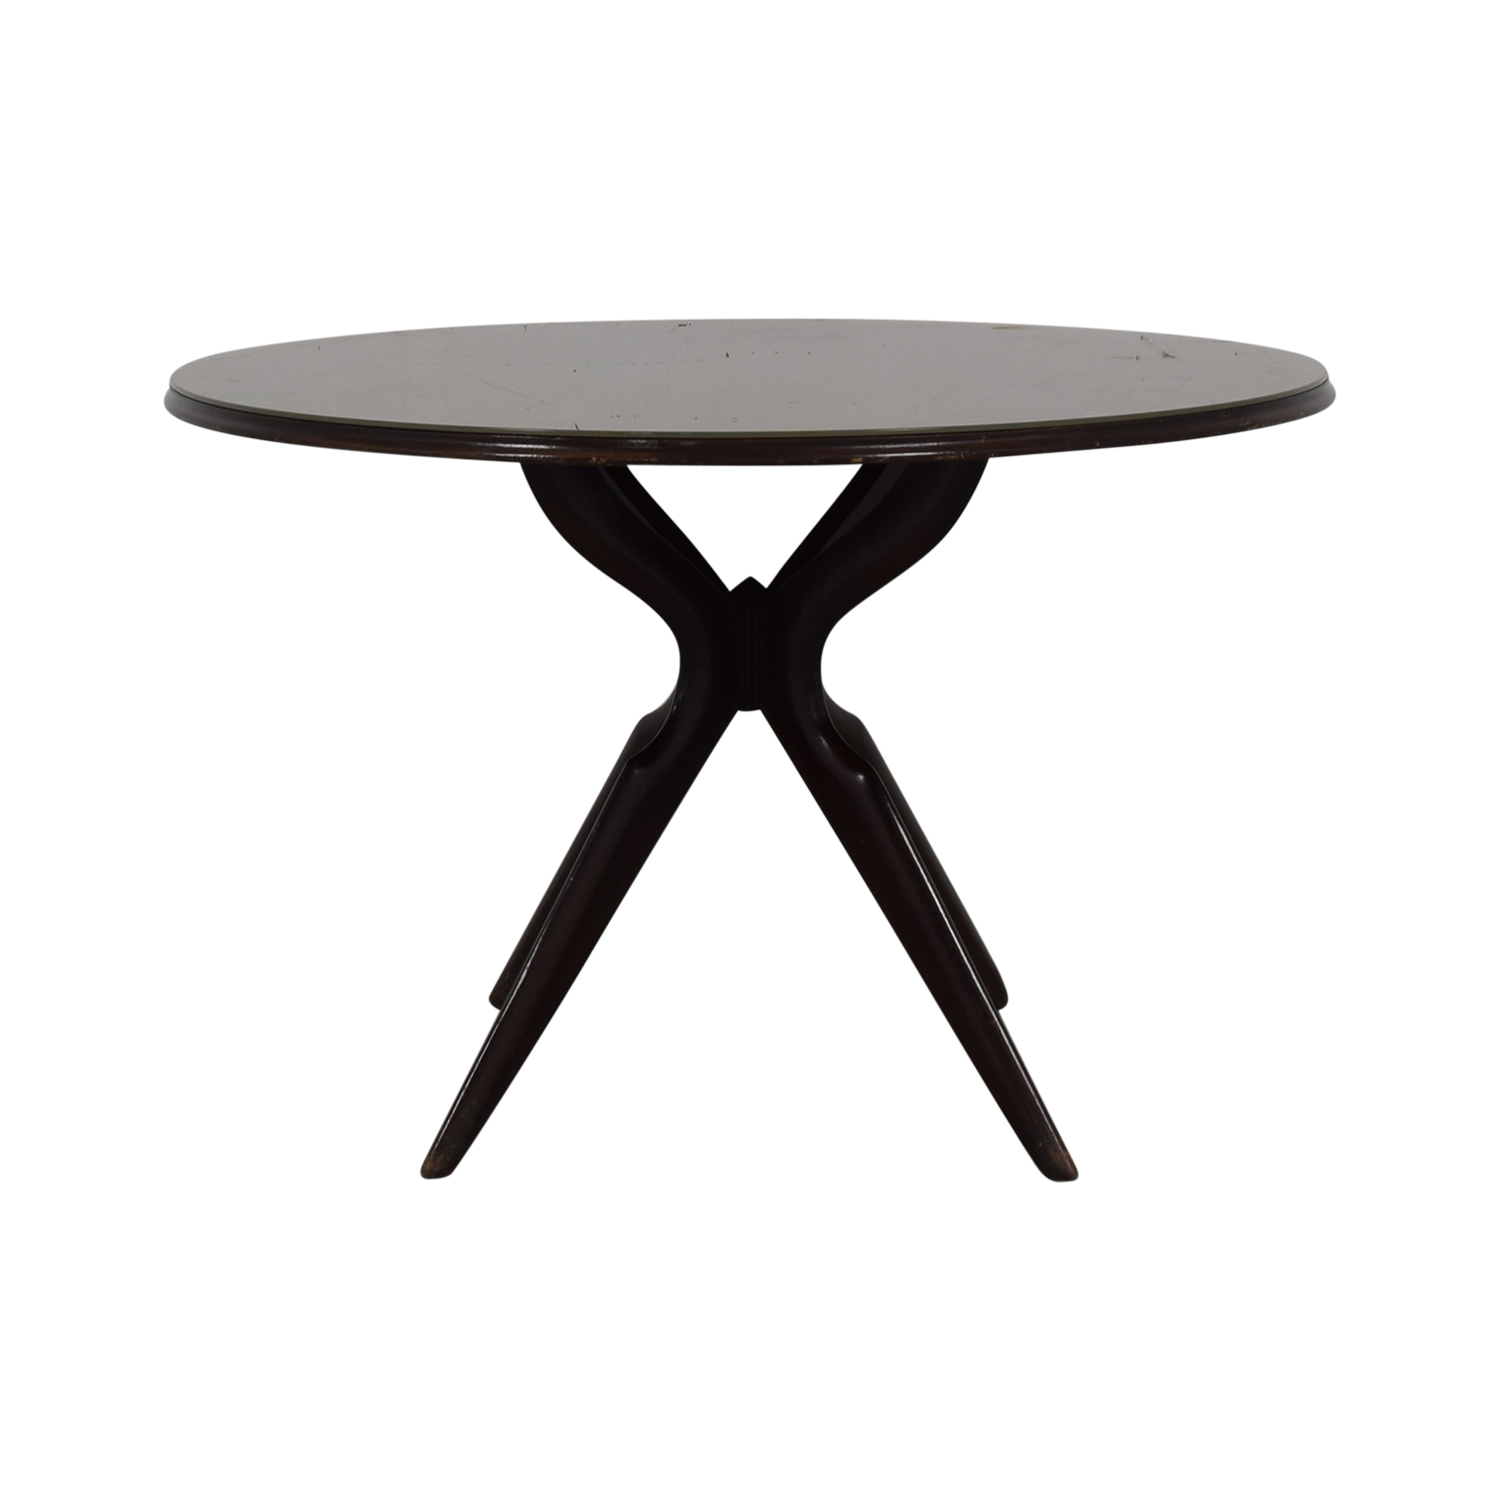 Round Pedestal Table for sale